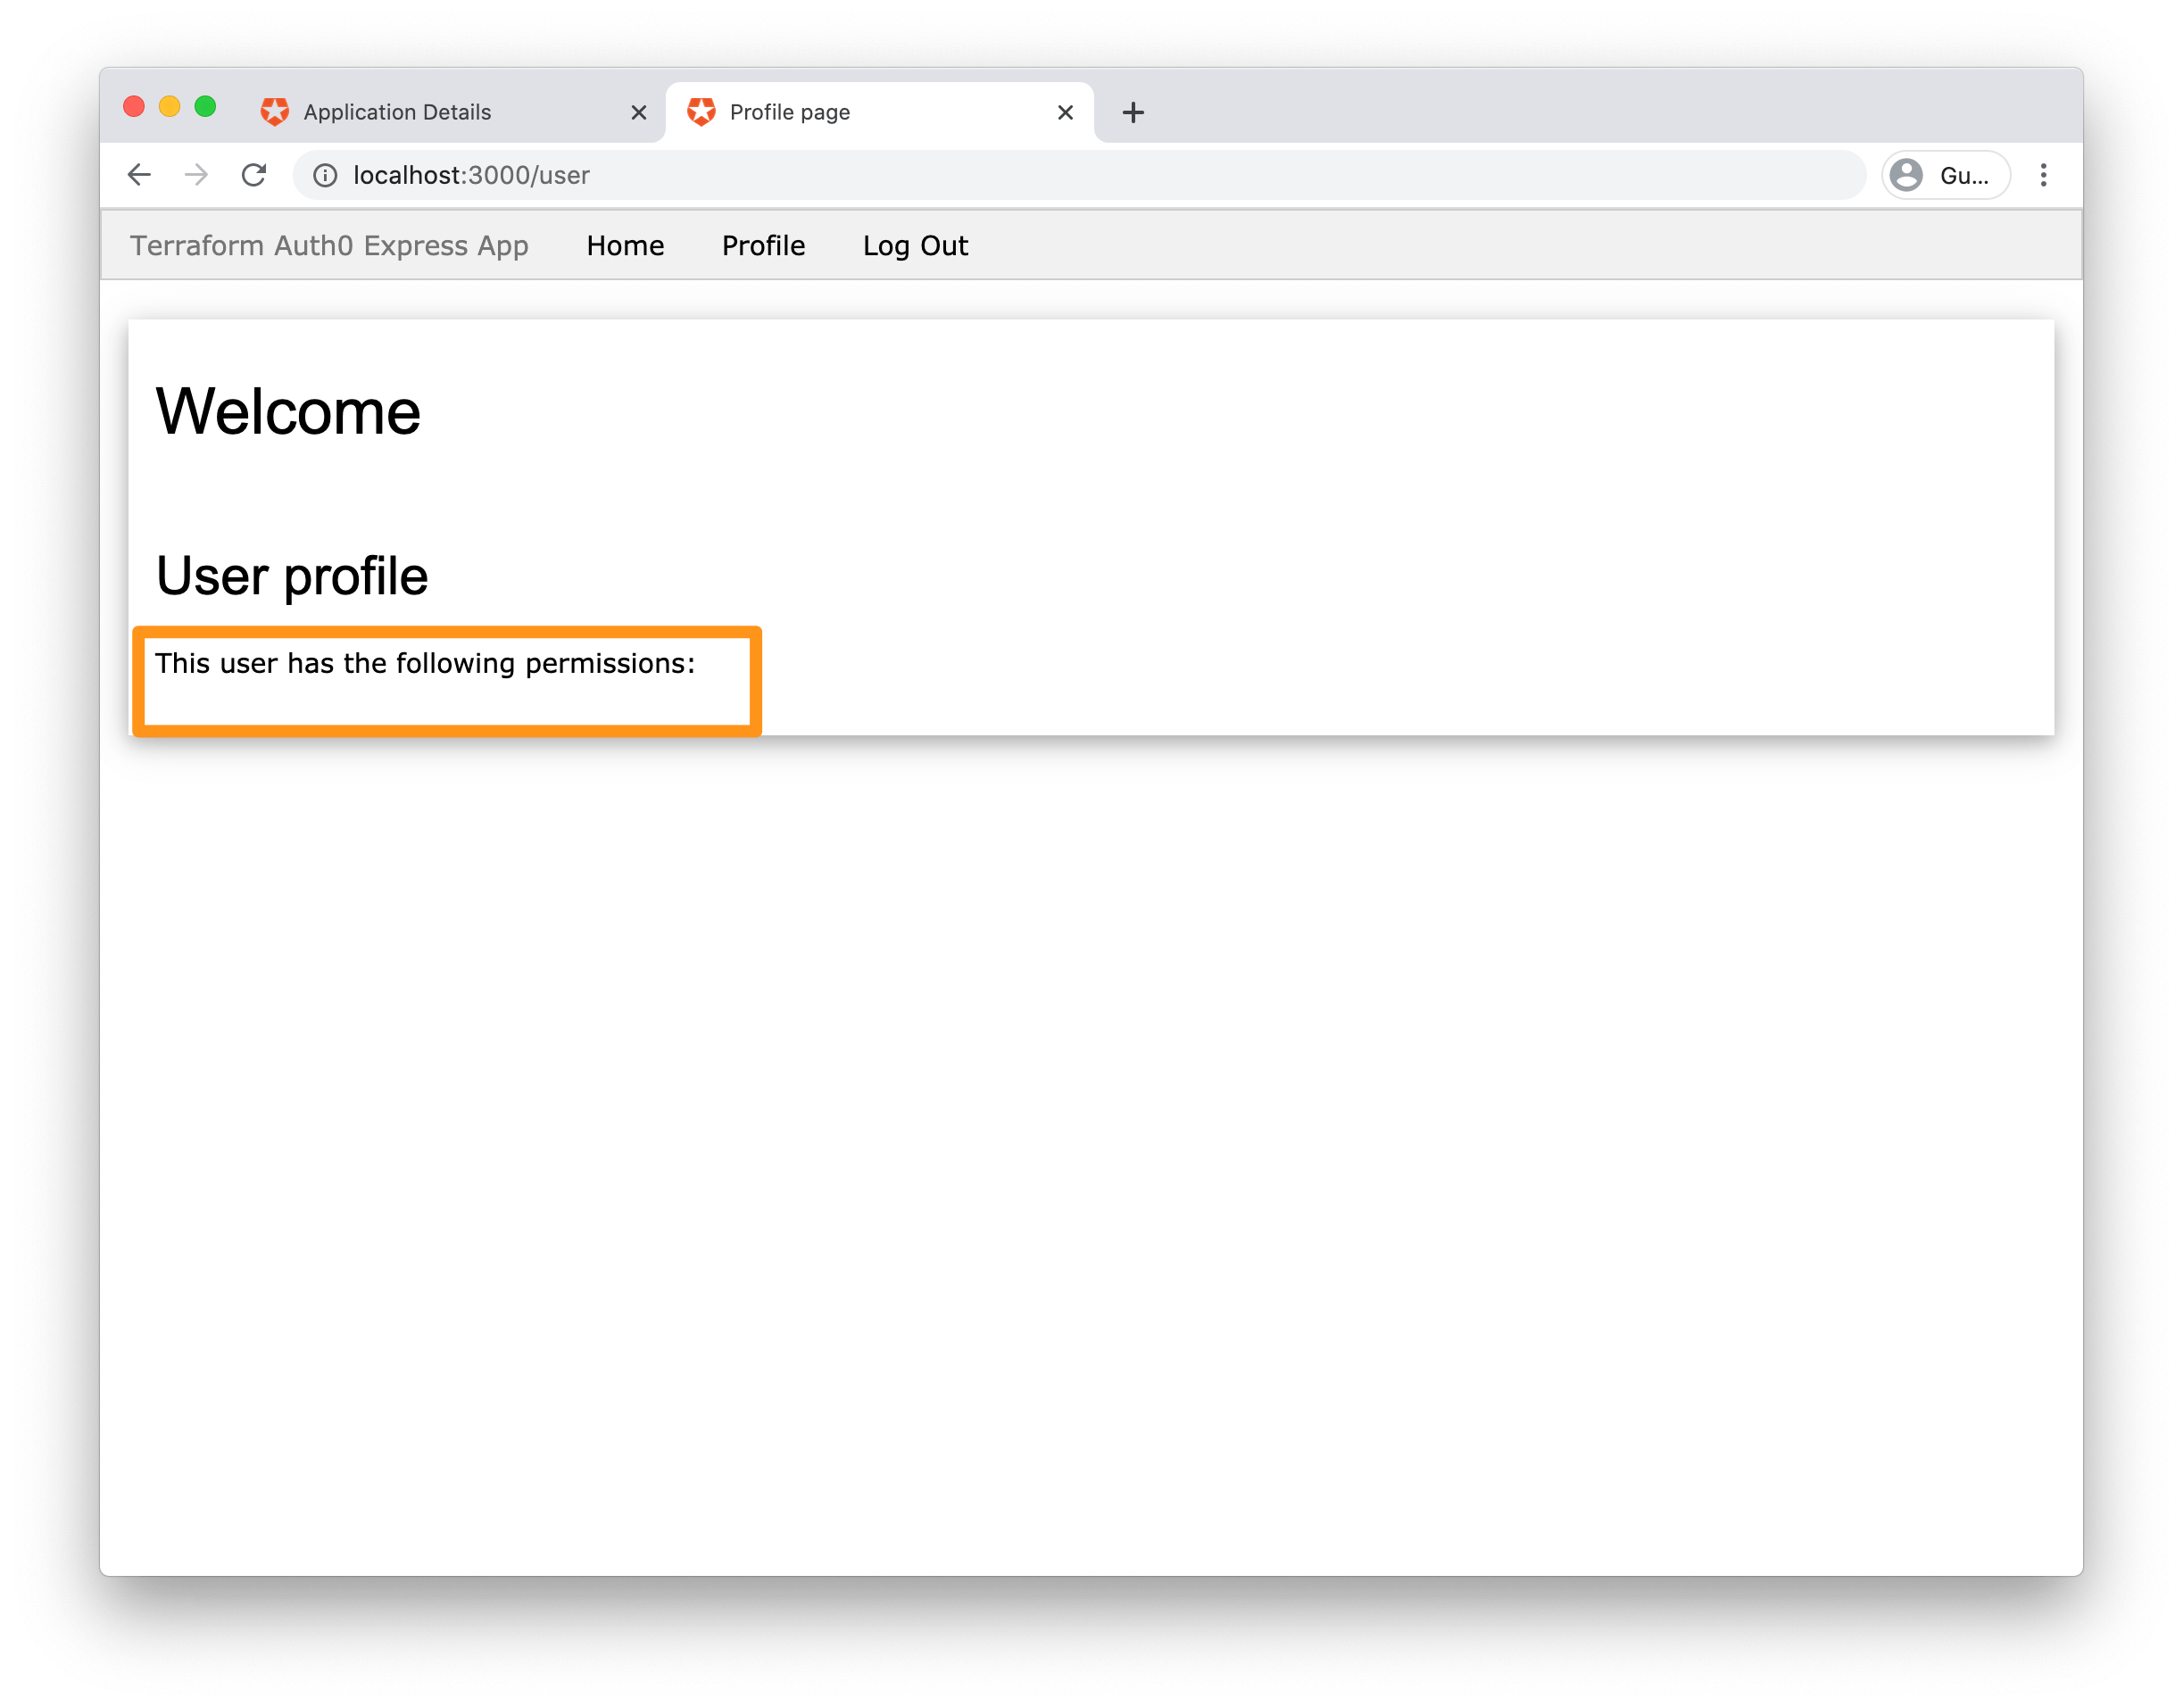 Screenshot: Successfully signed-in user